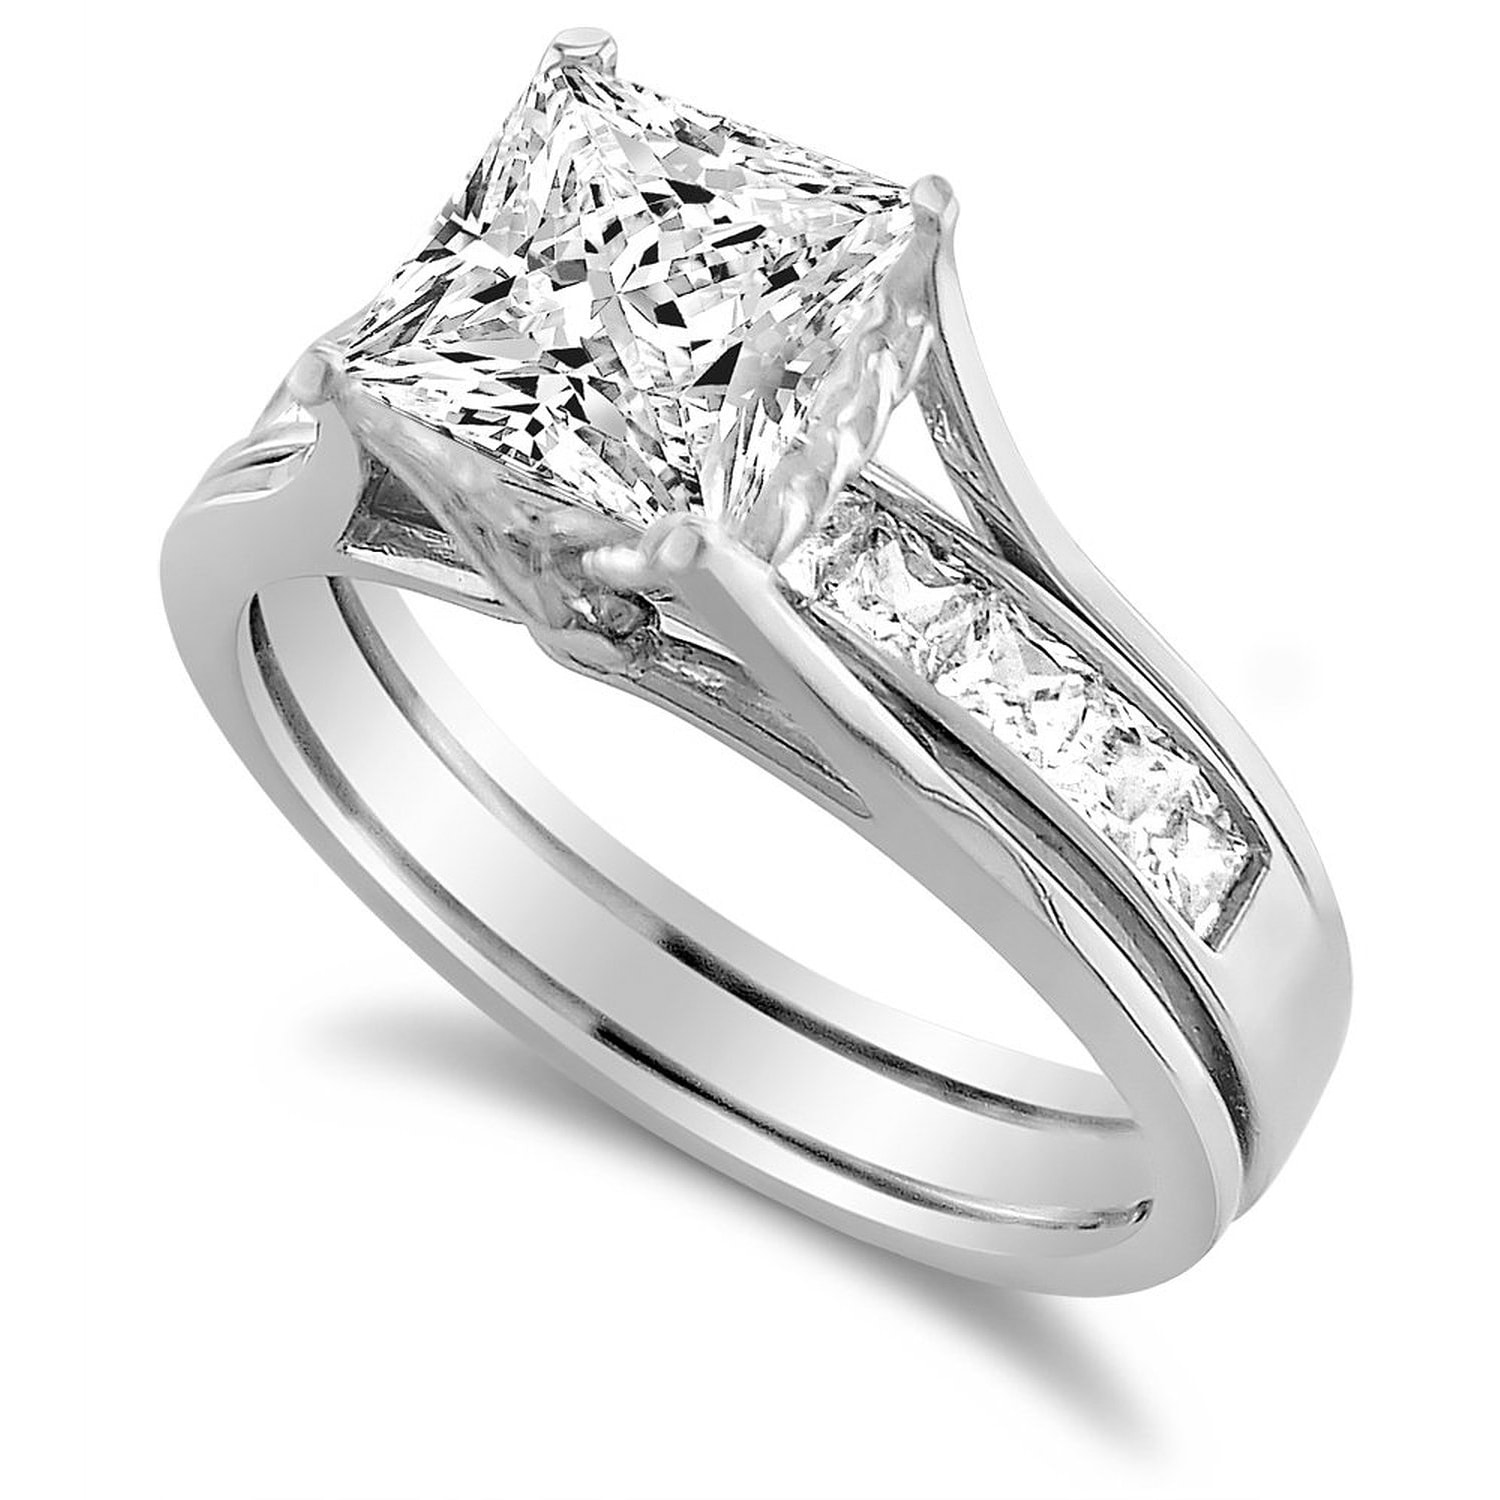 Shop 14k White Gold 1 3 4 Ct Princess Cut Cubic Zirconia Insert